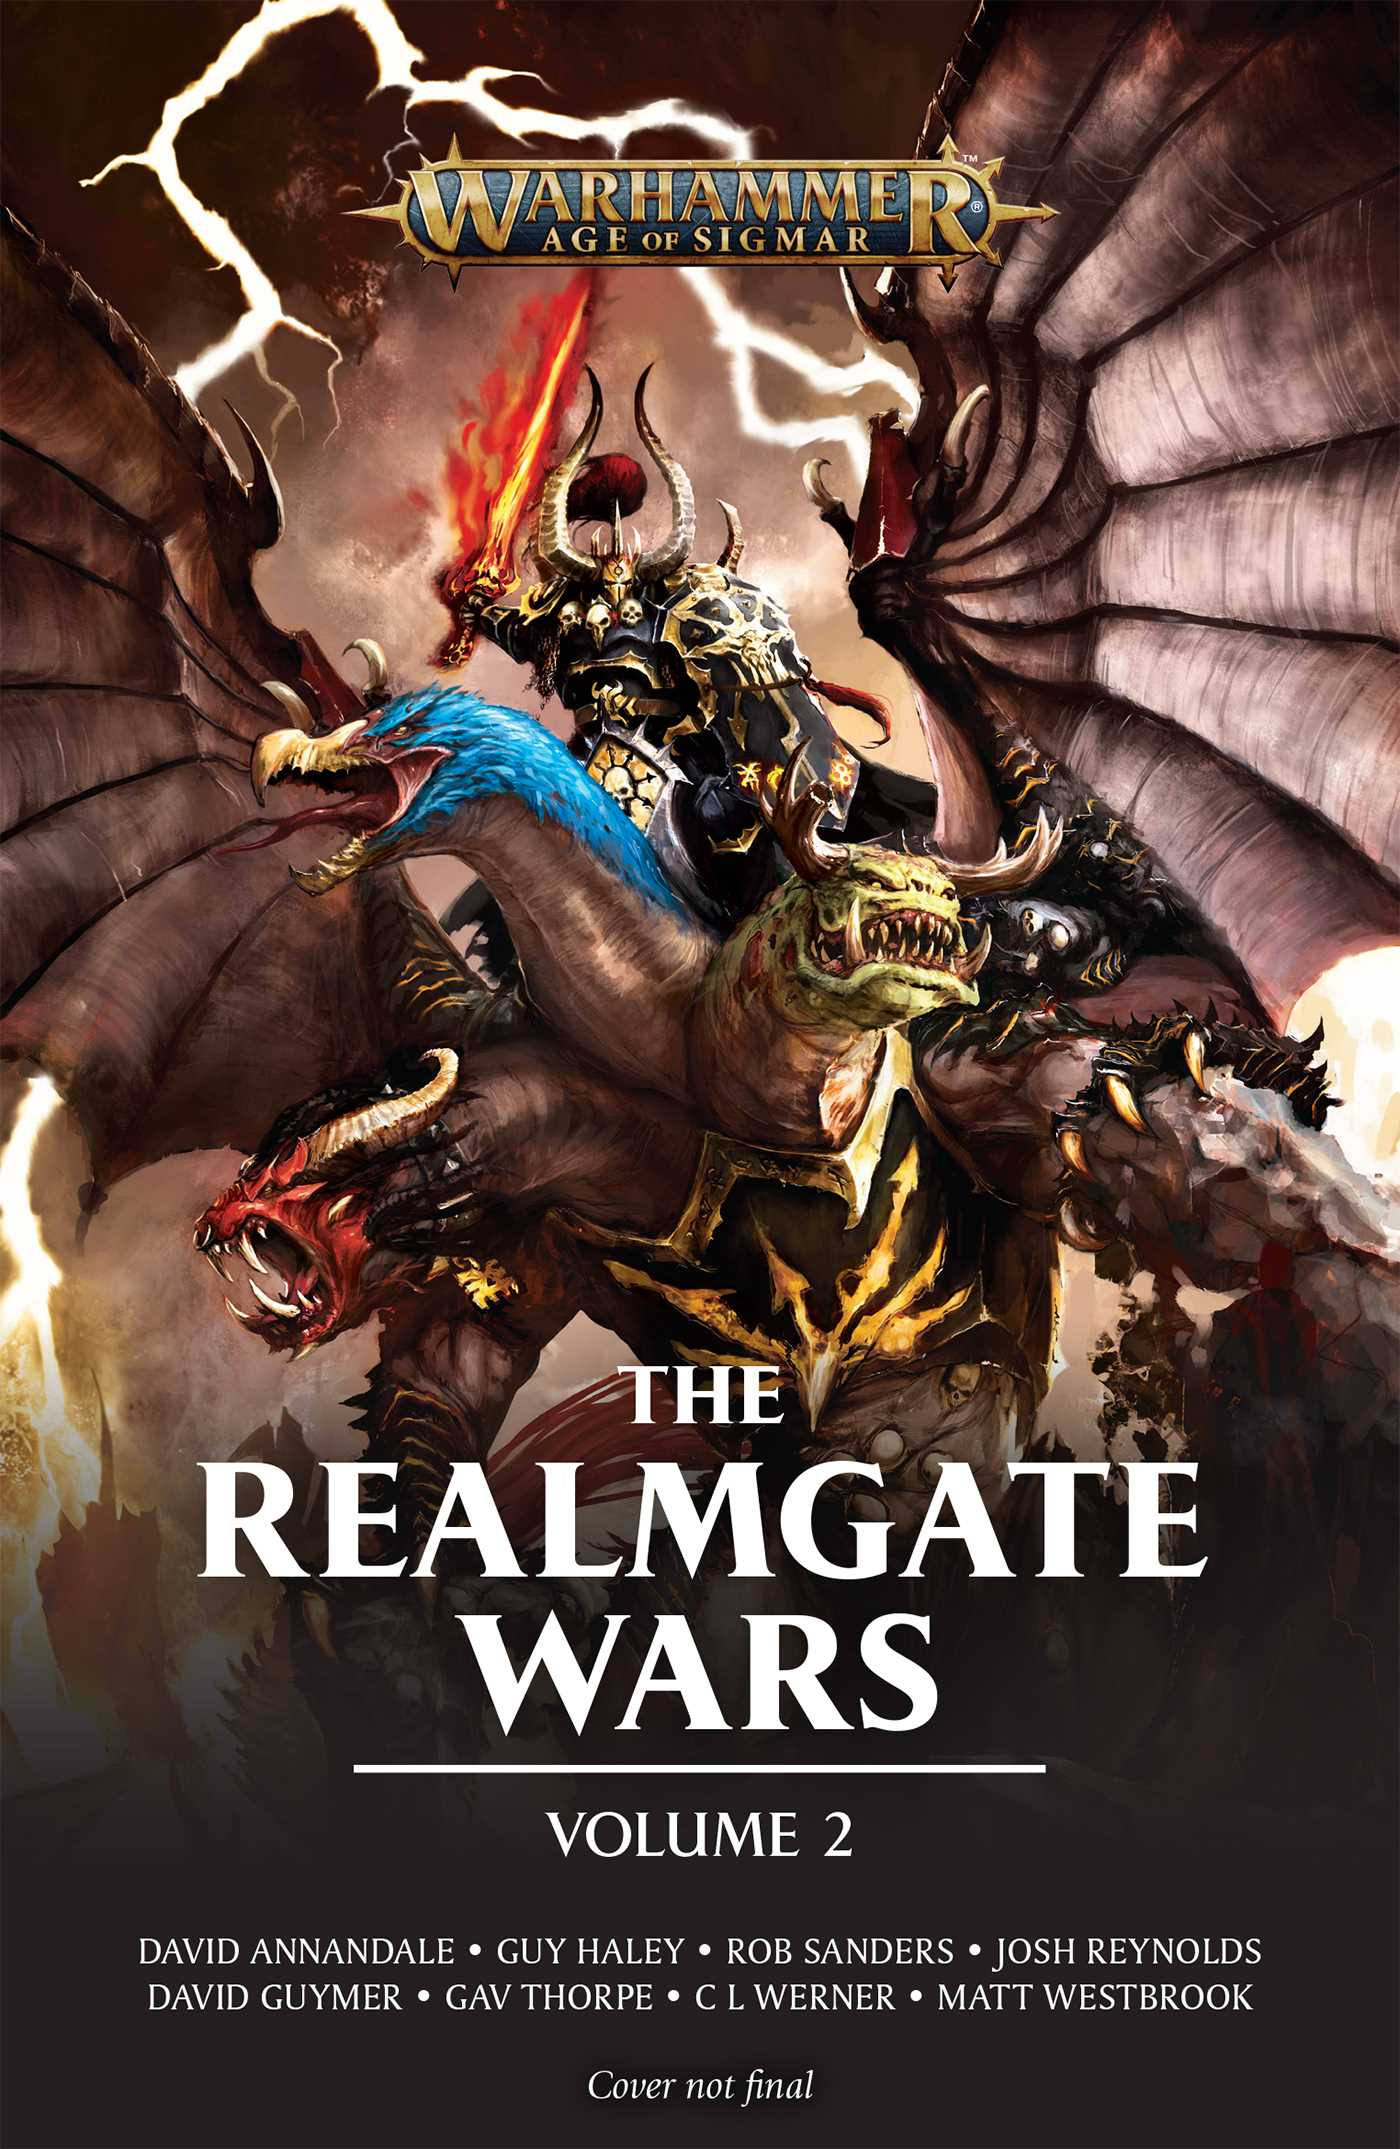 The realmgate wars volume 2 book by c l werner matt westbrook the realmgate wars volume 2 9781784967666 hr fandeluxe Image collections